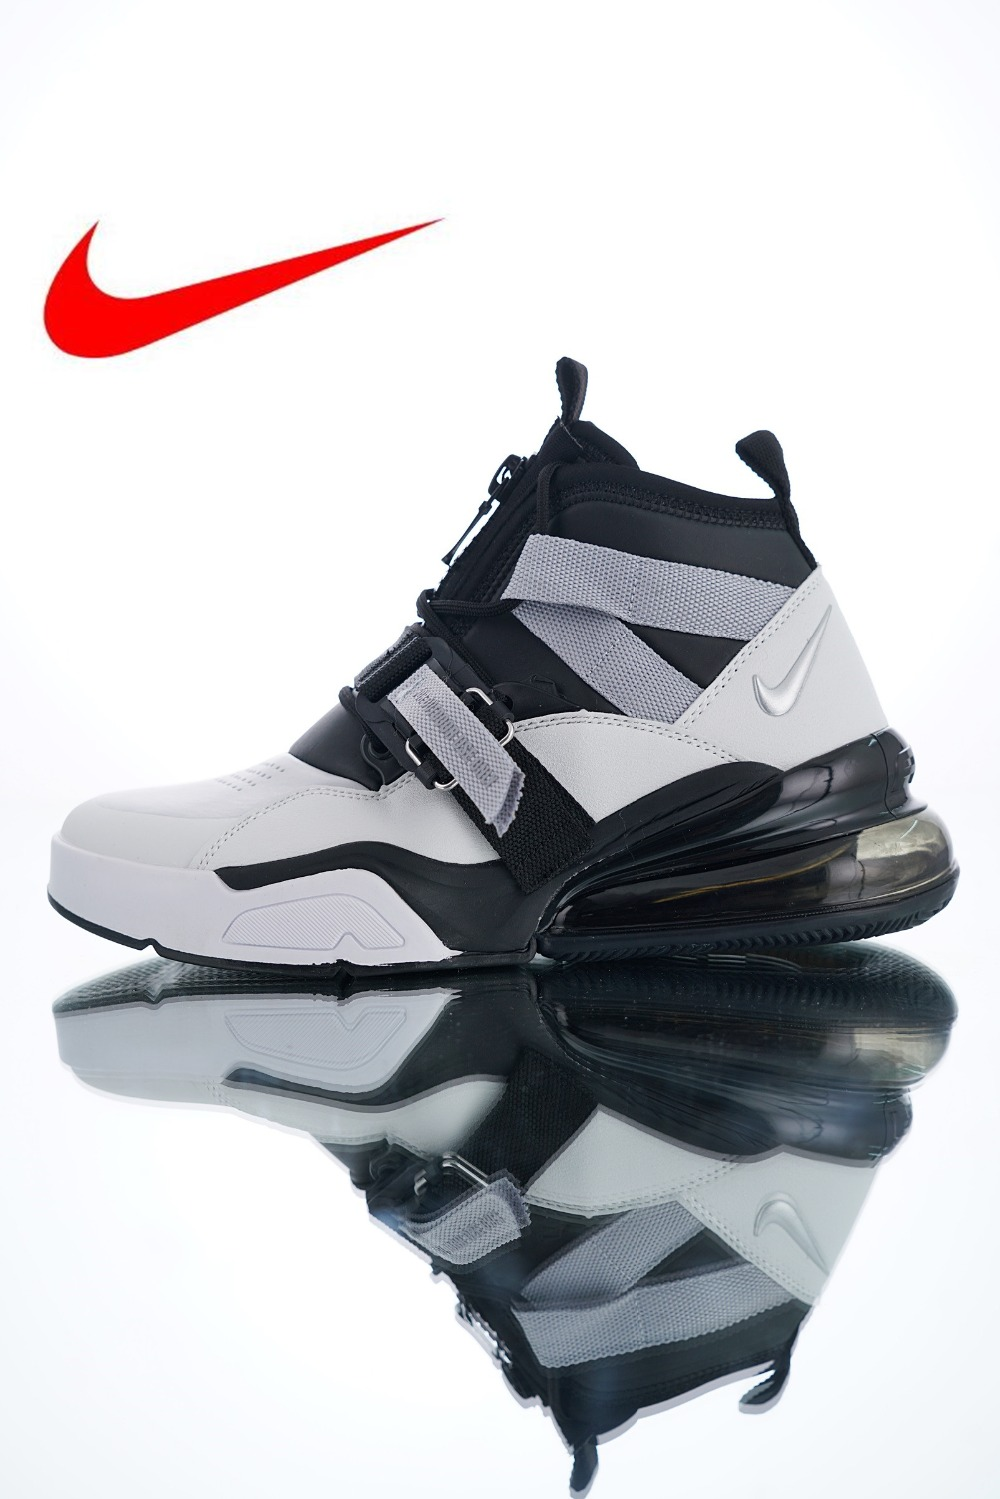 72332148025f Official Original High Quality Nike Air Force 270 Utility Men s Basketball  Shoes